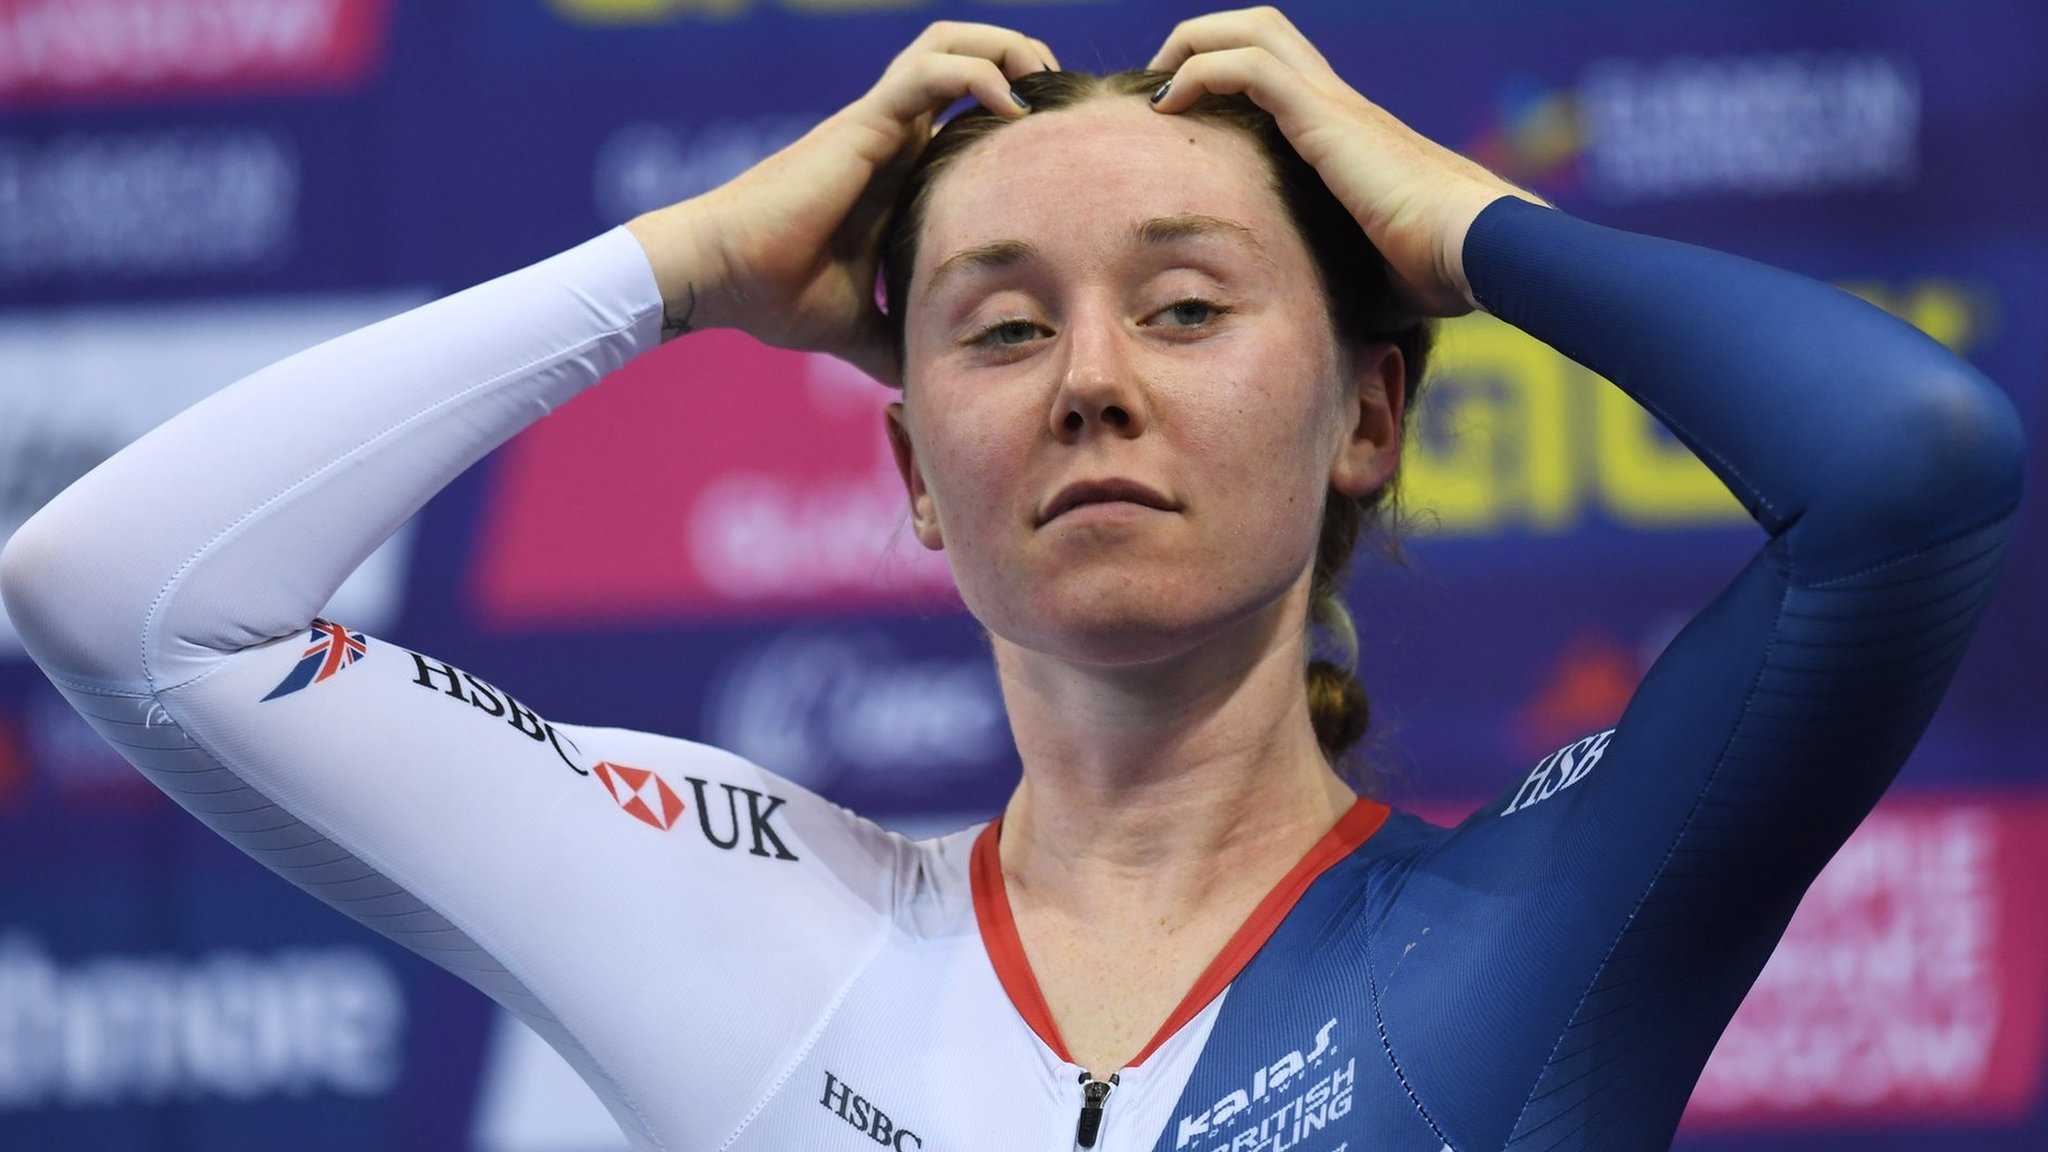 UCI Track Cycling World Championships: Katie Archibald targets right level of nerves